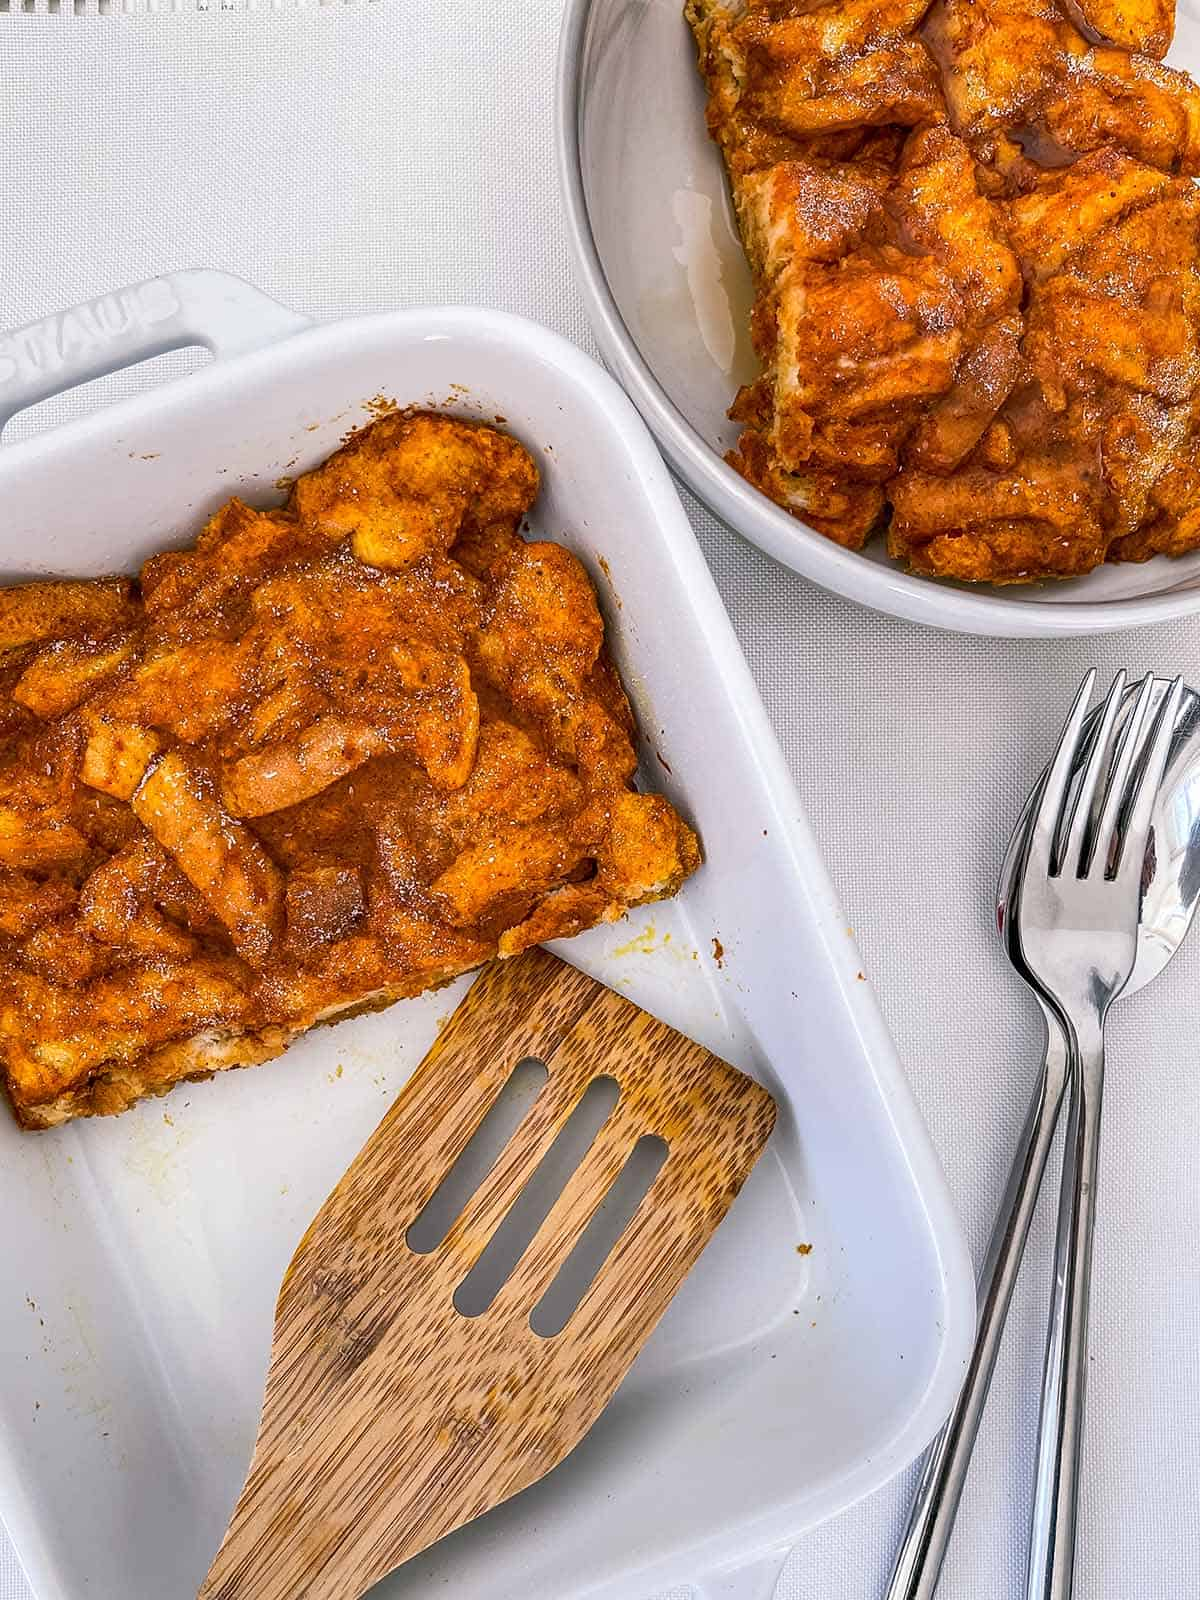 A dish of french toast casserole with a wooden spatula.